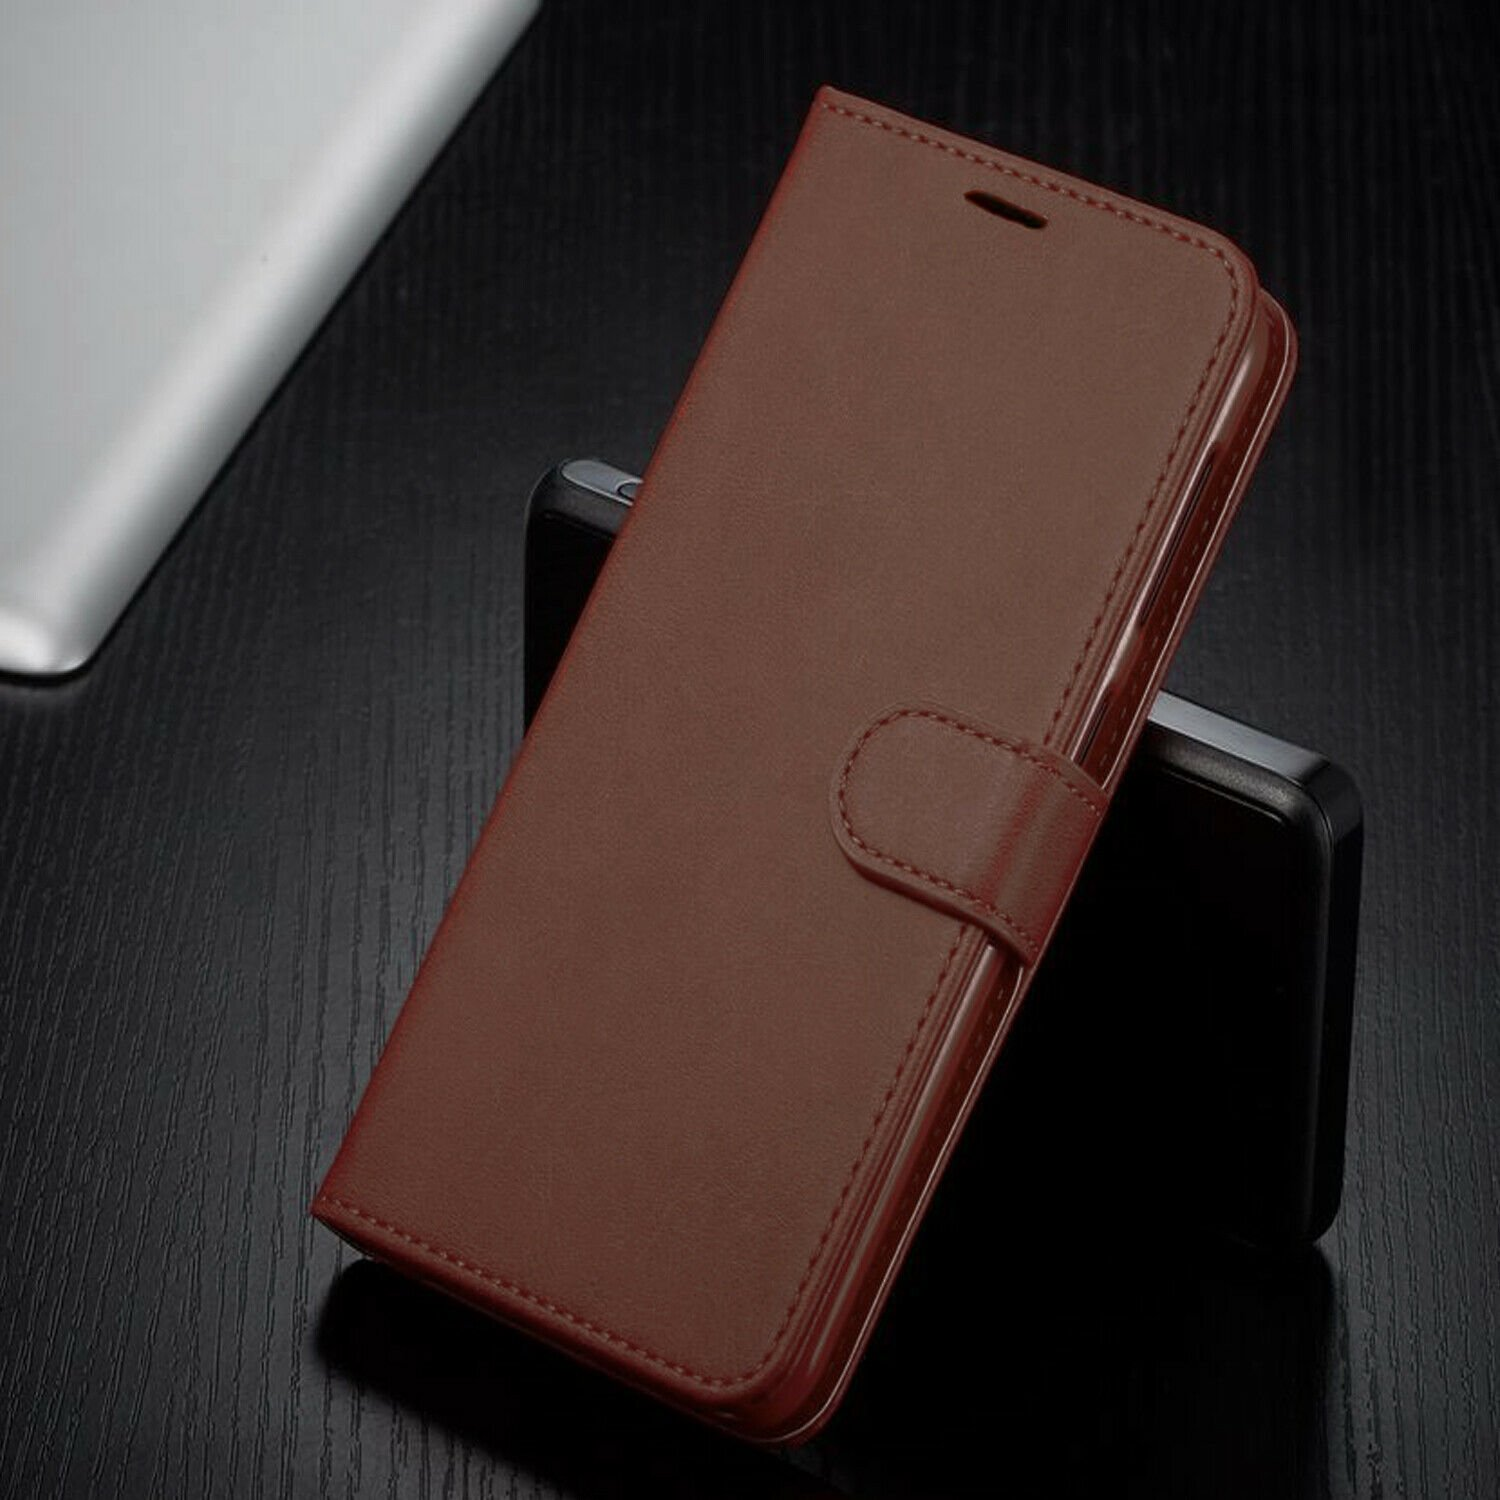 thumbnail 15 - For iPhone 7 / 8 / 7 Plus Case, Premium Wallet Cover + Tempered Glass Protector